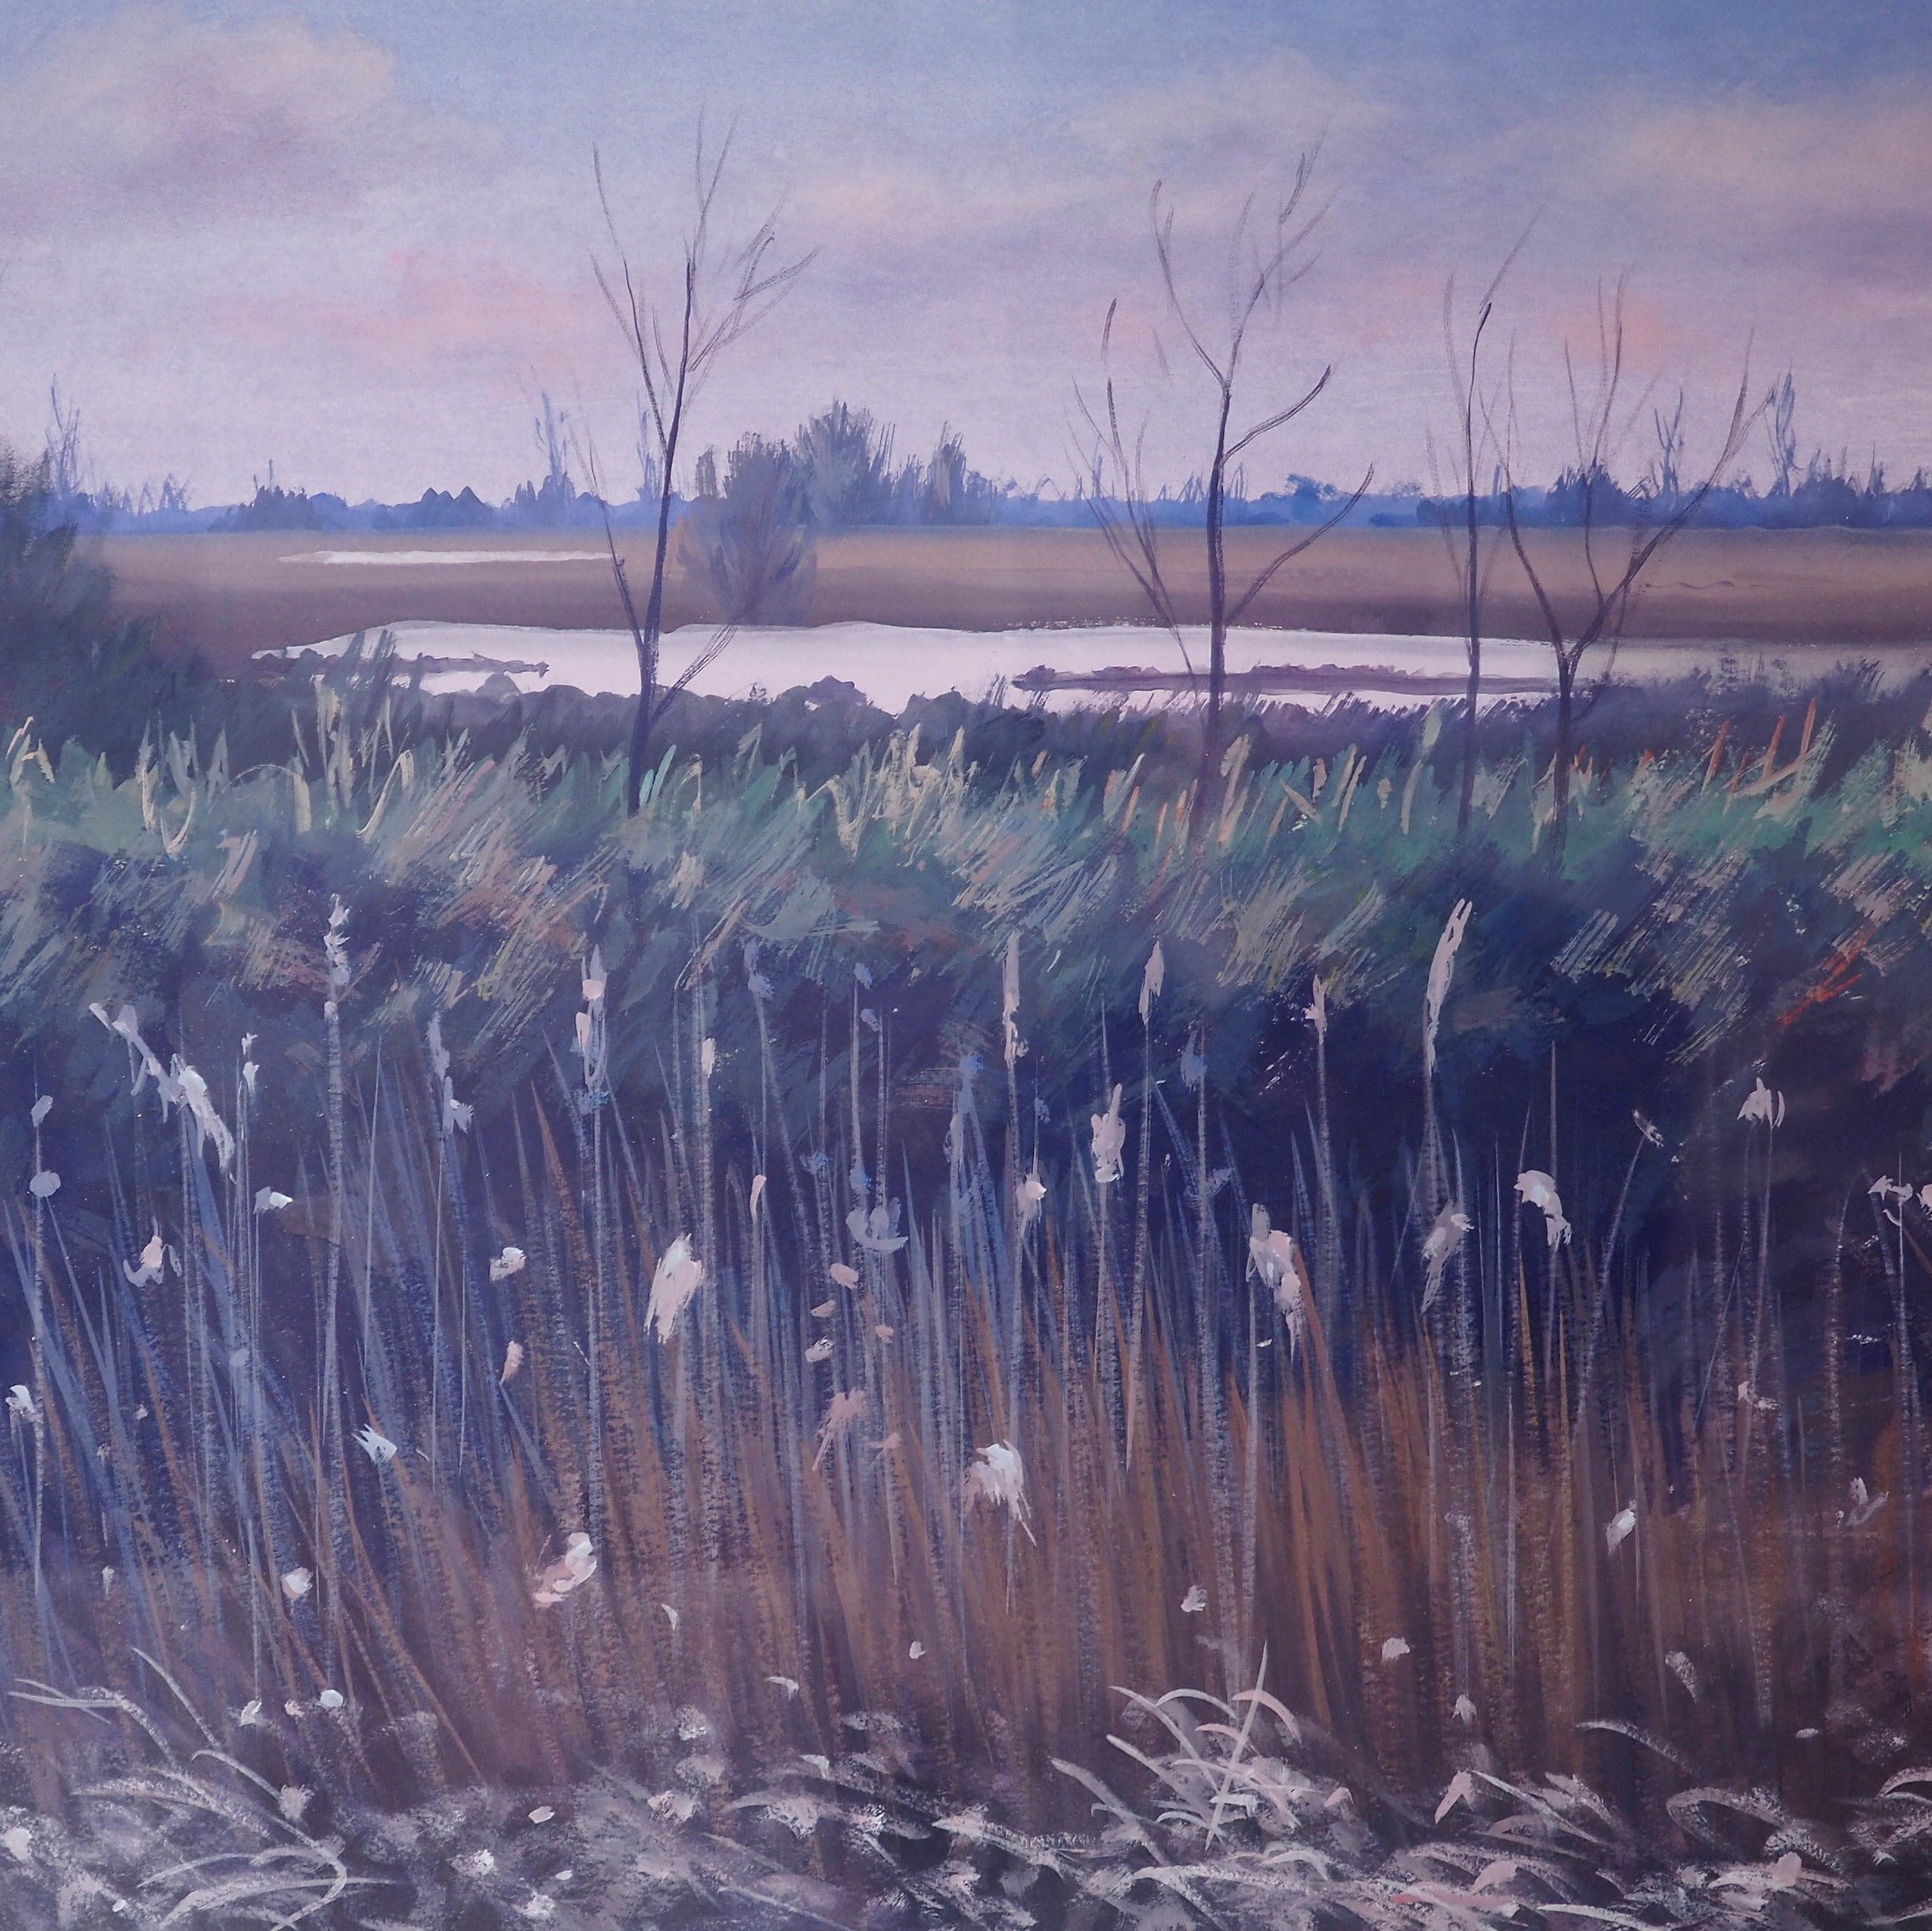 Day, Anthony - 'Winter Wetland' | Anthony Day | Primavera Gallery